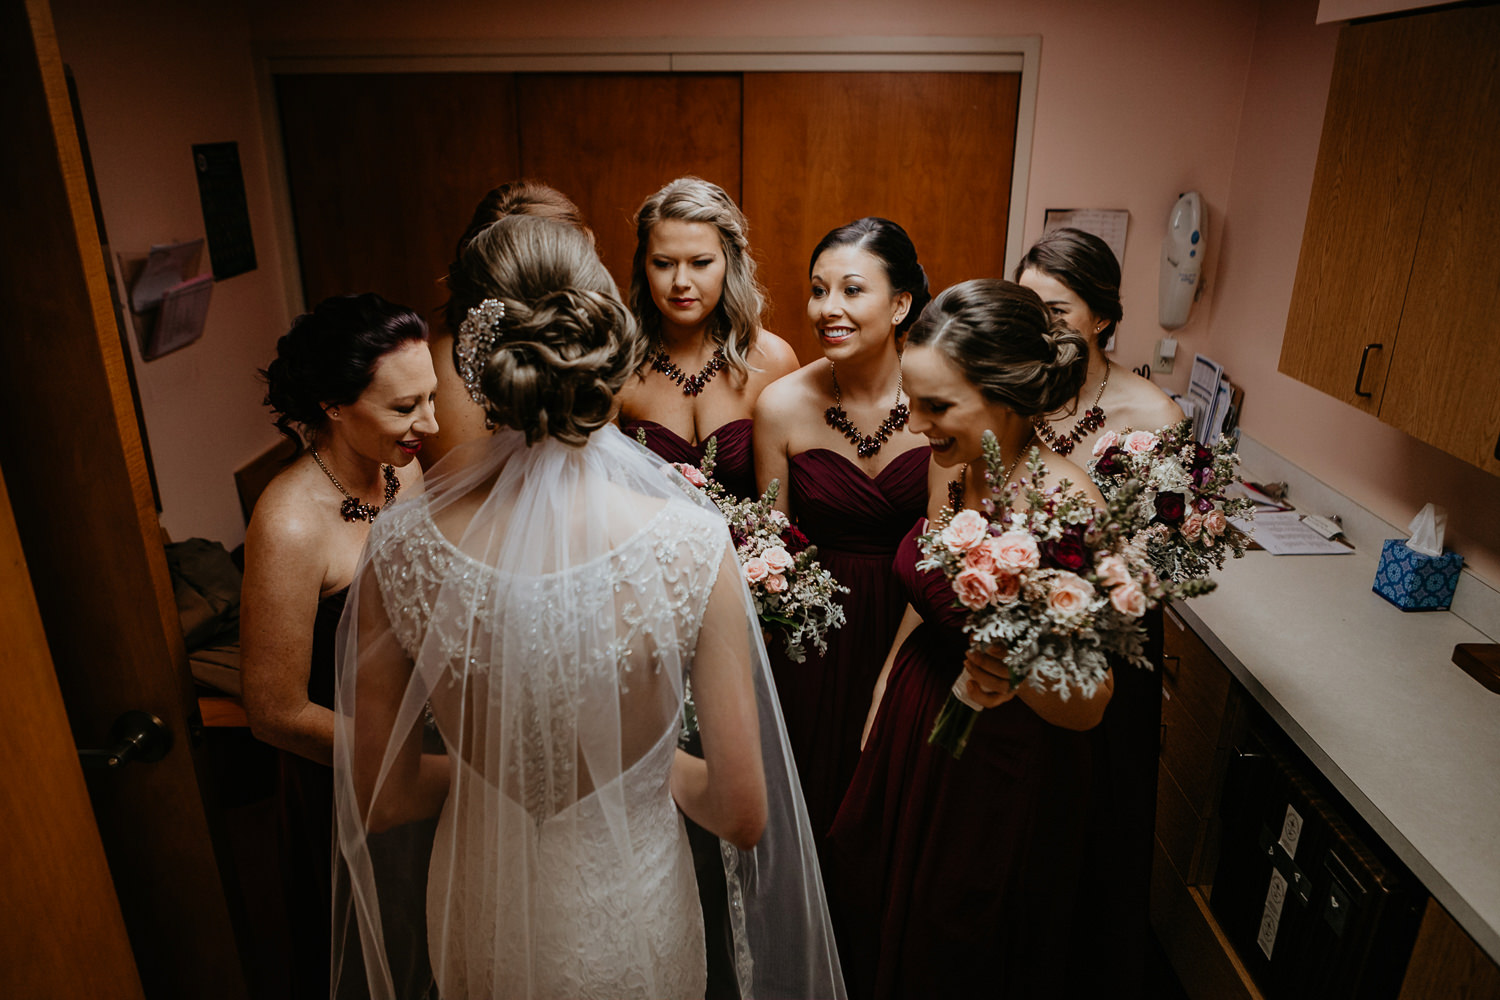 bride and bridesmaids still huddled after praying but all smiling